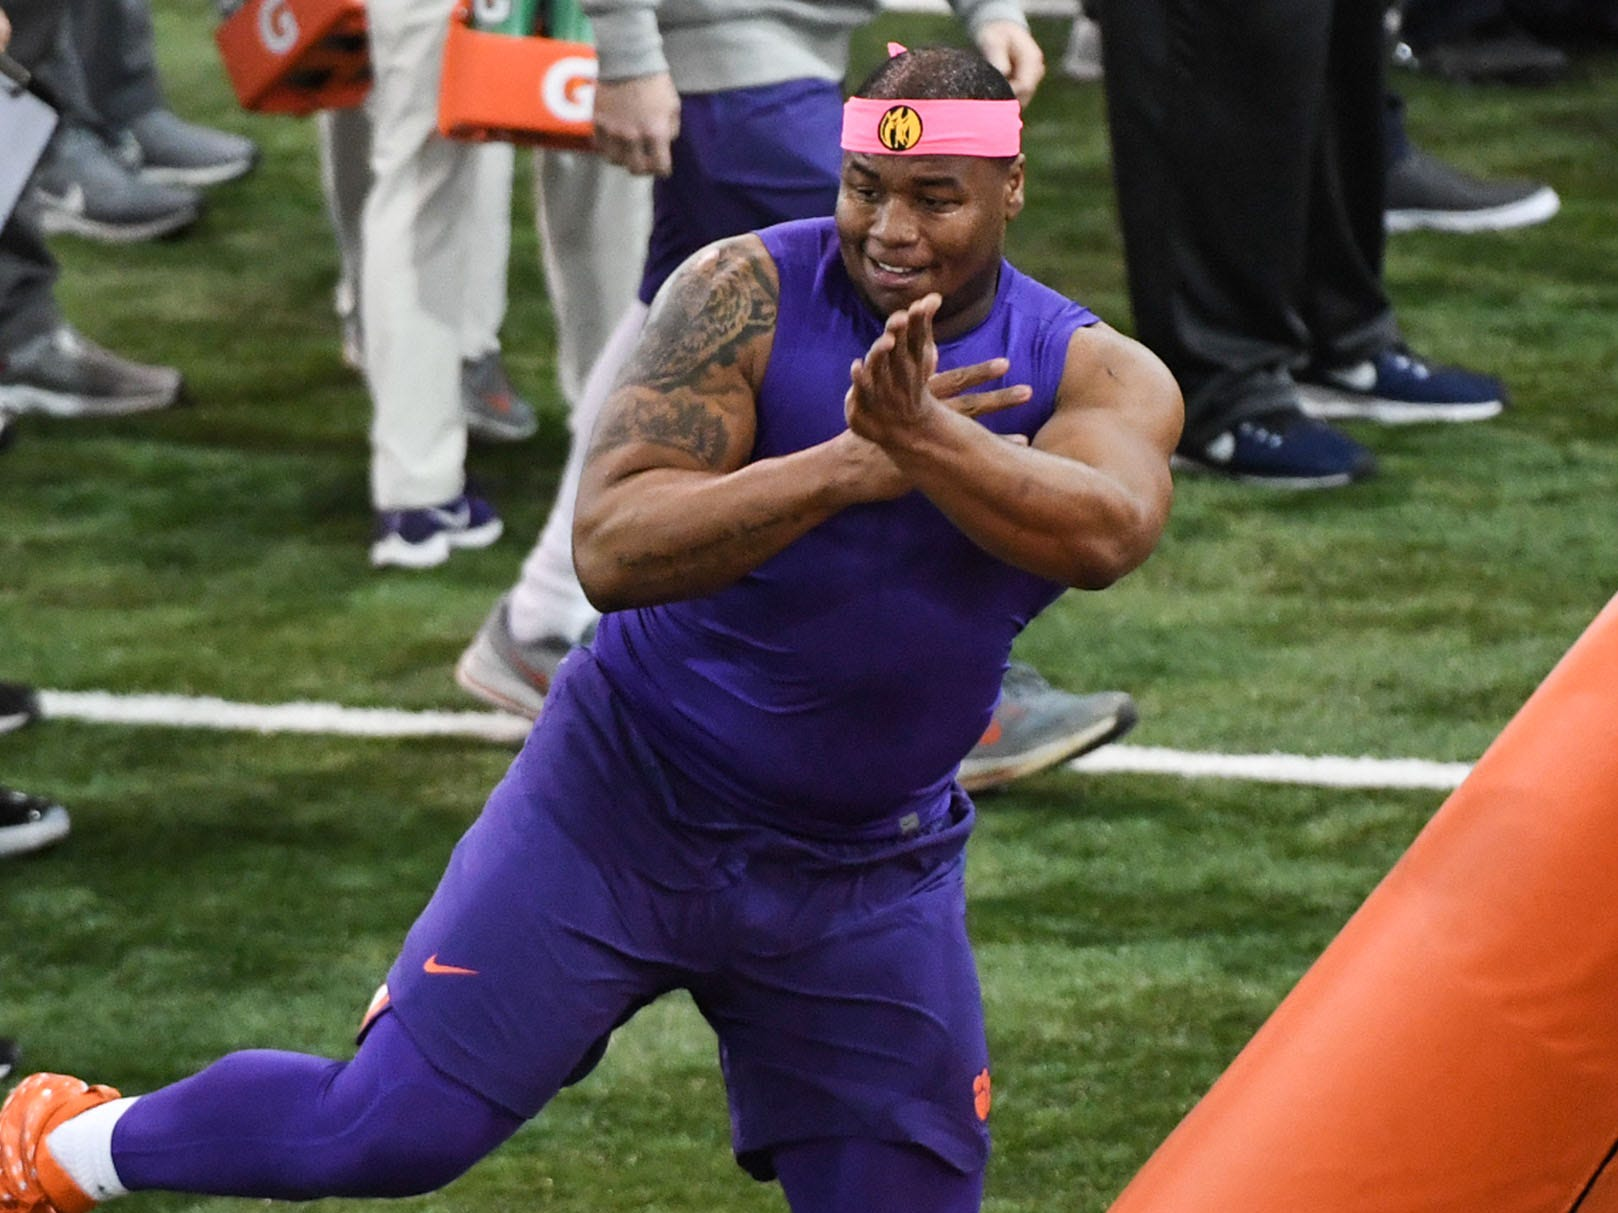 31. Los Angeles Rams: DT Dexter Lawrence, Clemson – The third and most massive Tigers defensive lineman to go in Round 1 would take Ndamukong Suh's place up front